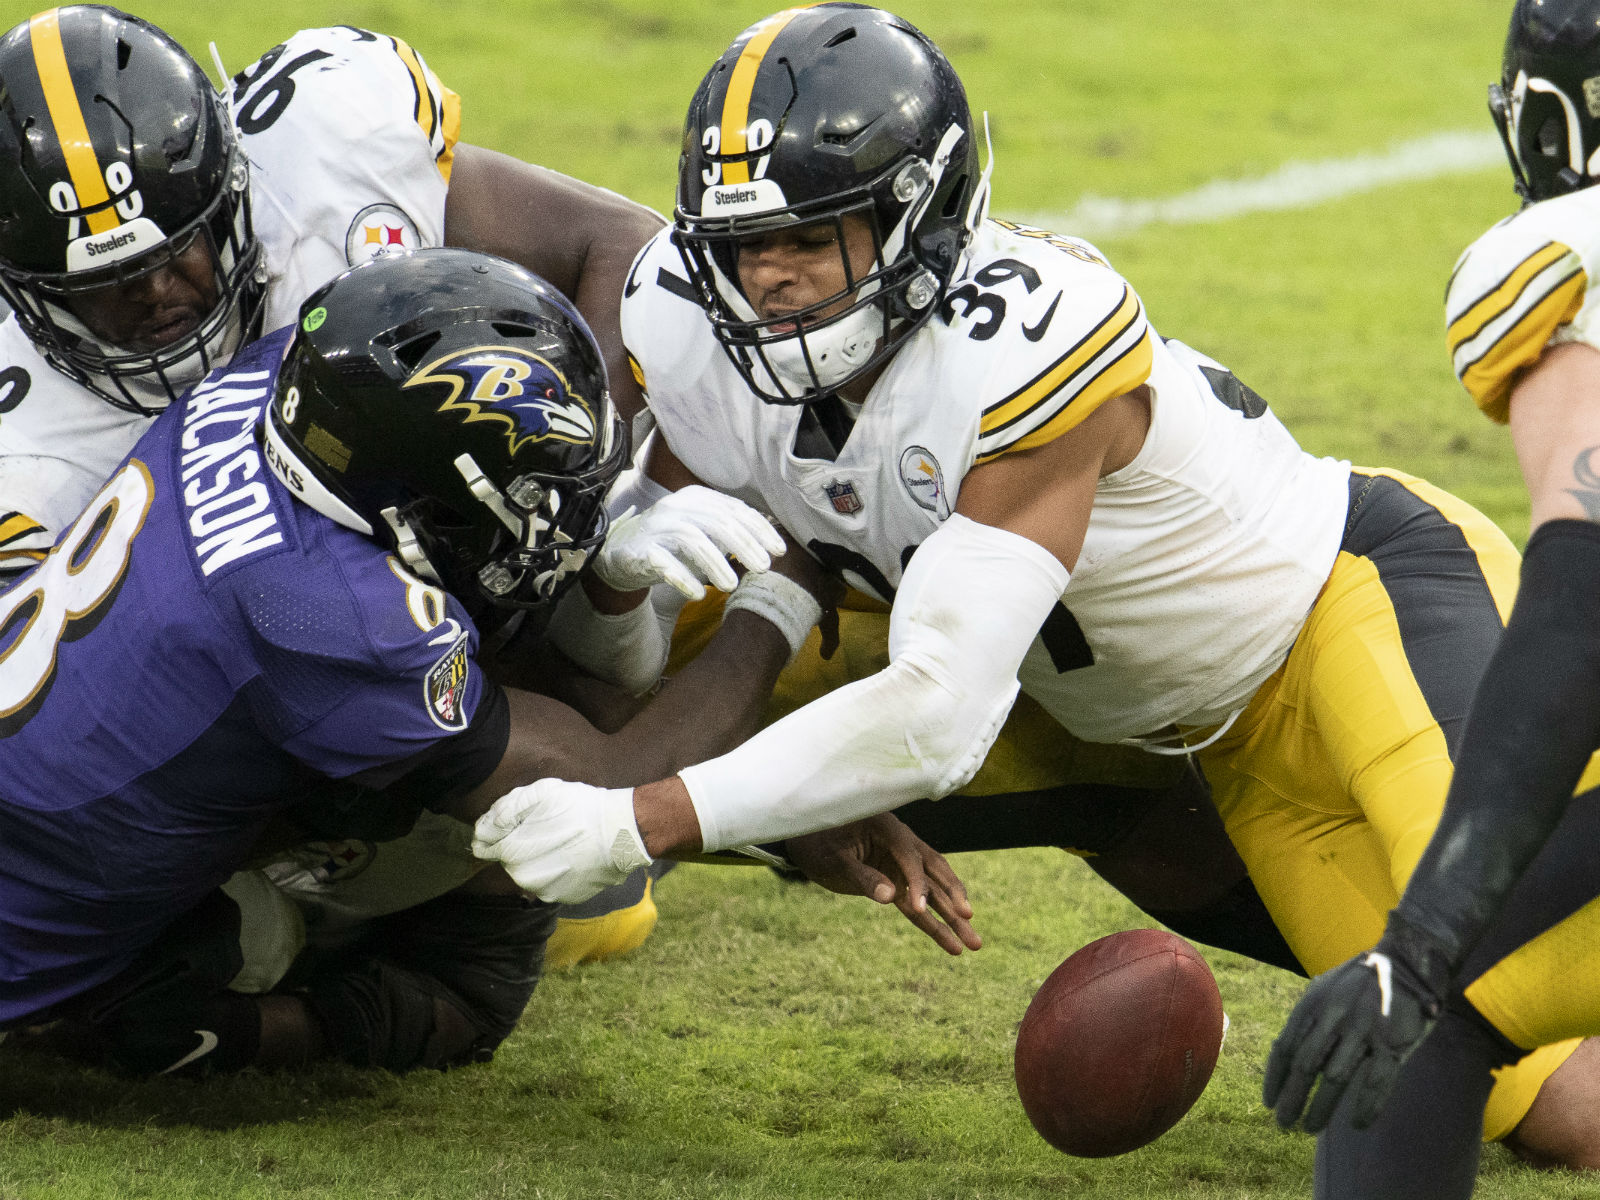 Ravens steelers betting line 2021 betting terms glossary